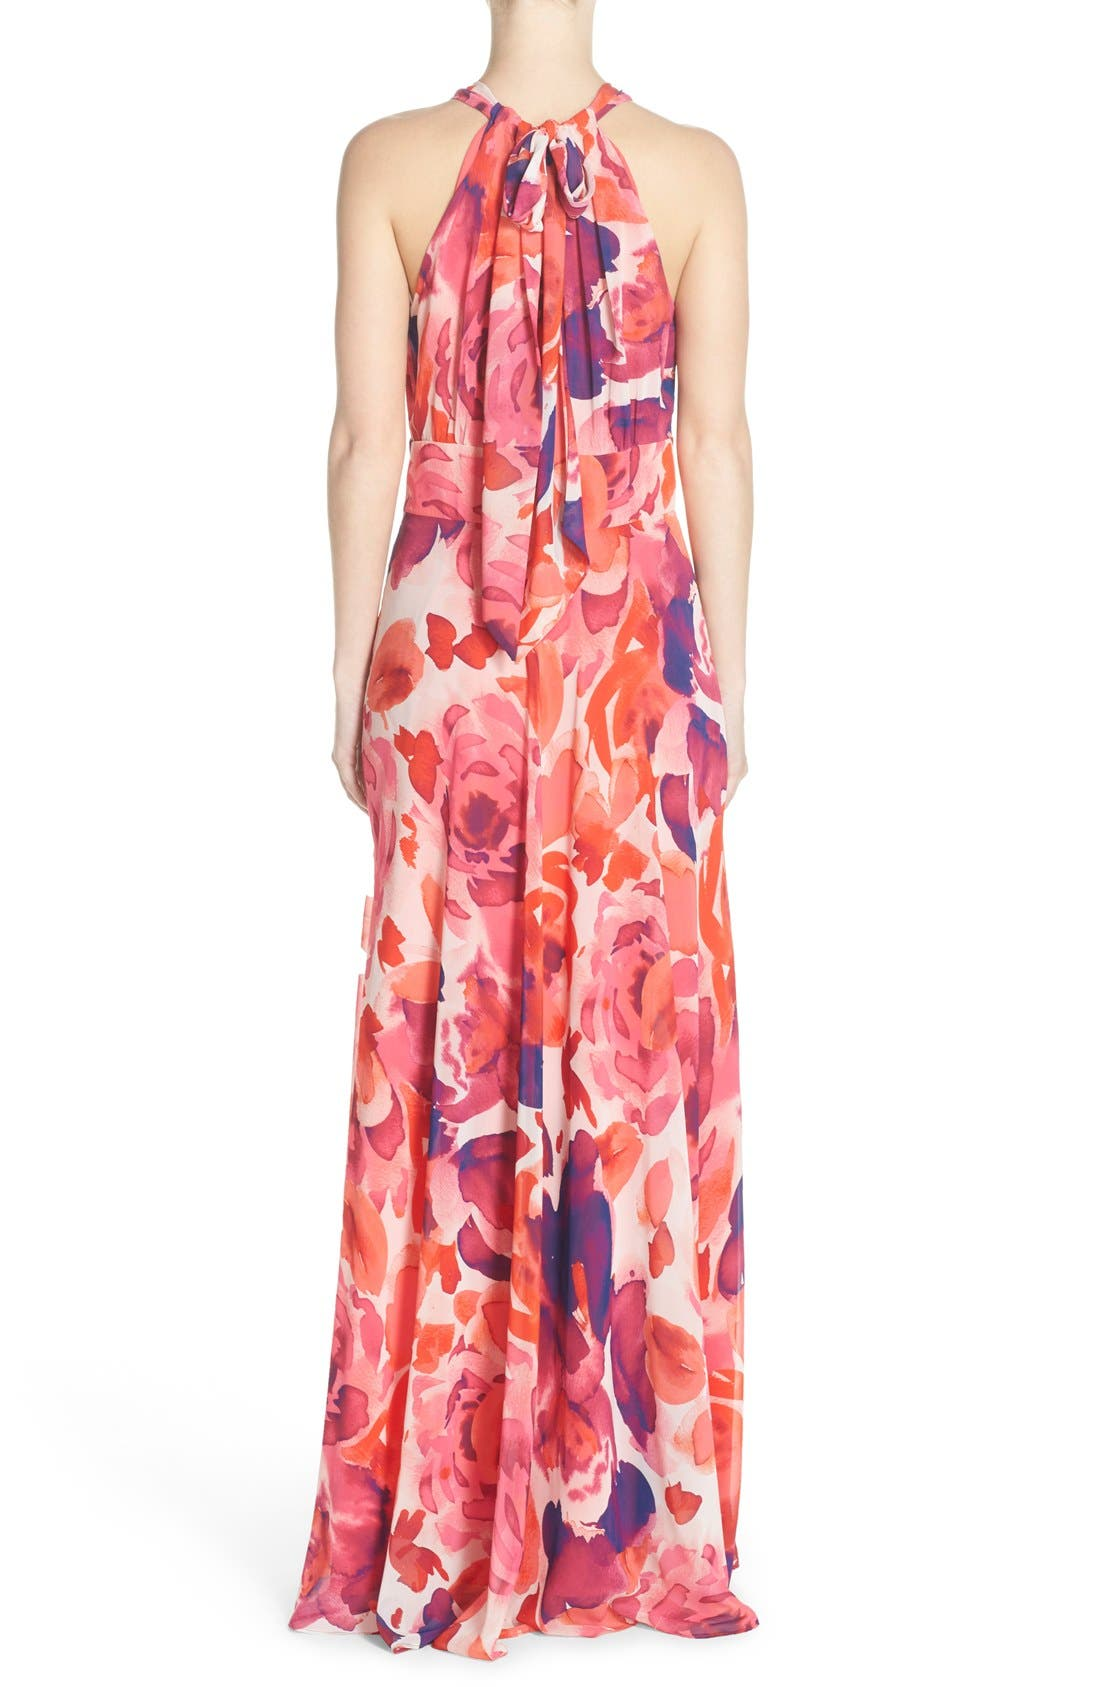 ELIZA J, Floral Print Halter Maxi Dress, Alternate thumbnail 3, color, PINK/ CORAL/ PURPLE